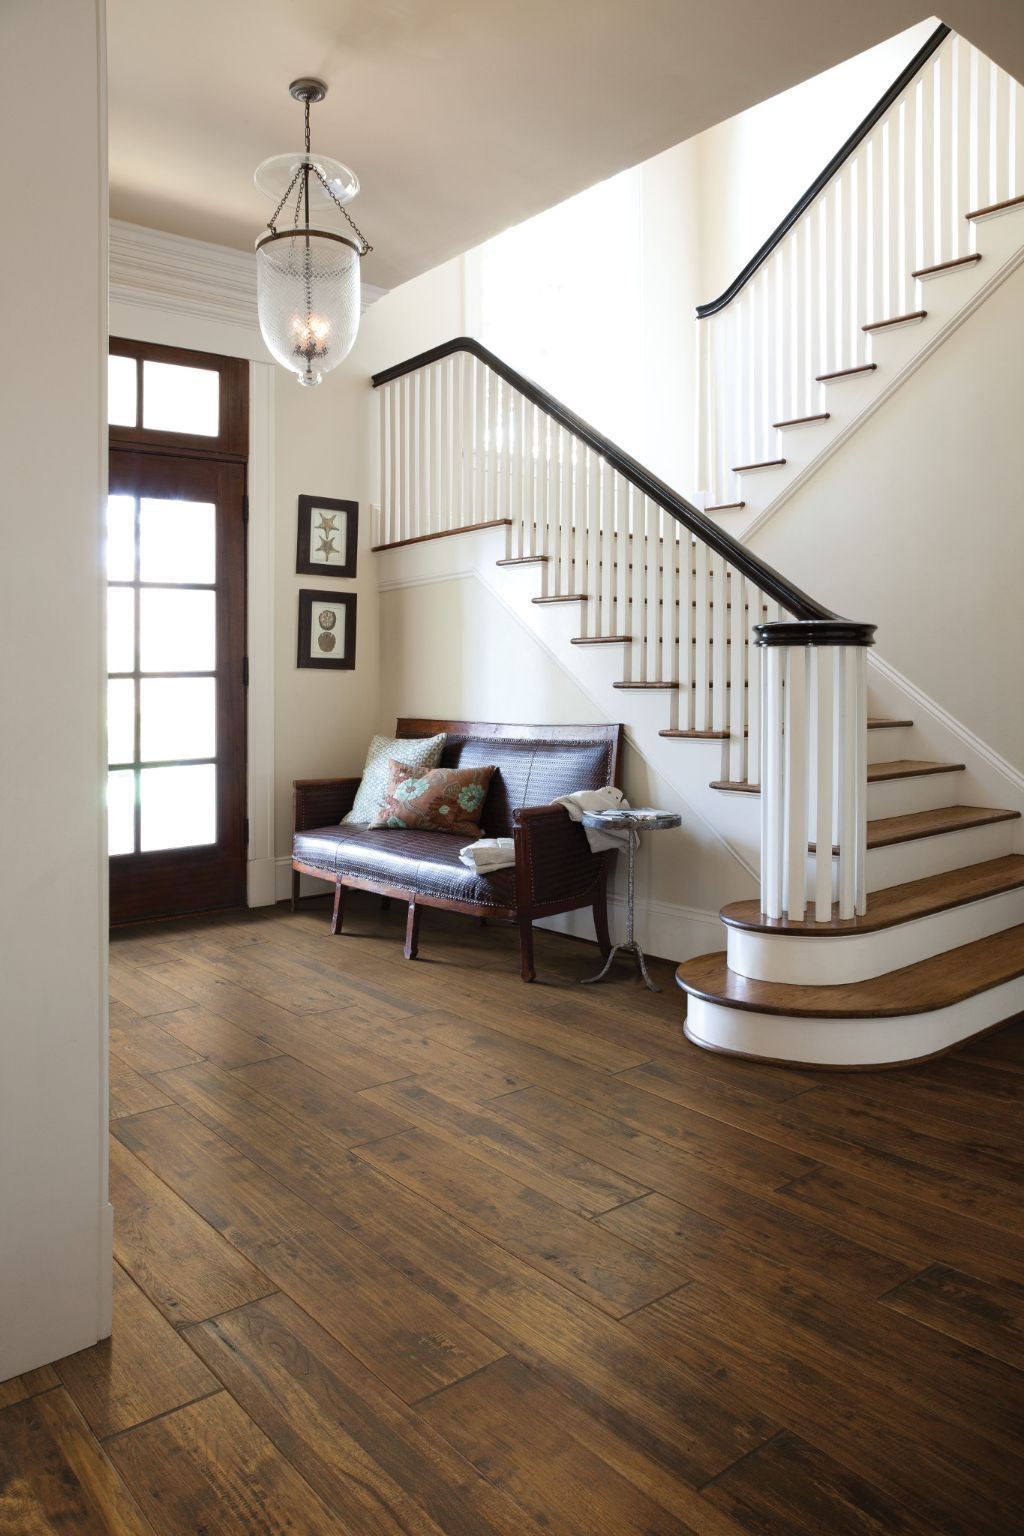 Are Dark Hardwood Floors Out Of Style In 2020 Wood Floor Design Hardwood Floors Dark Floor Design